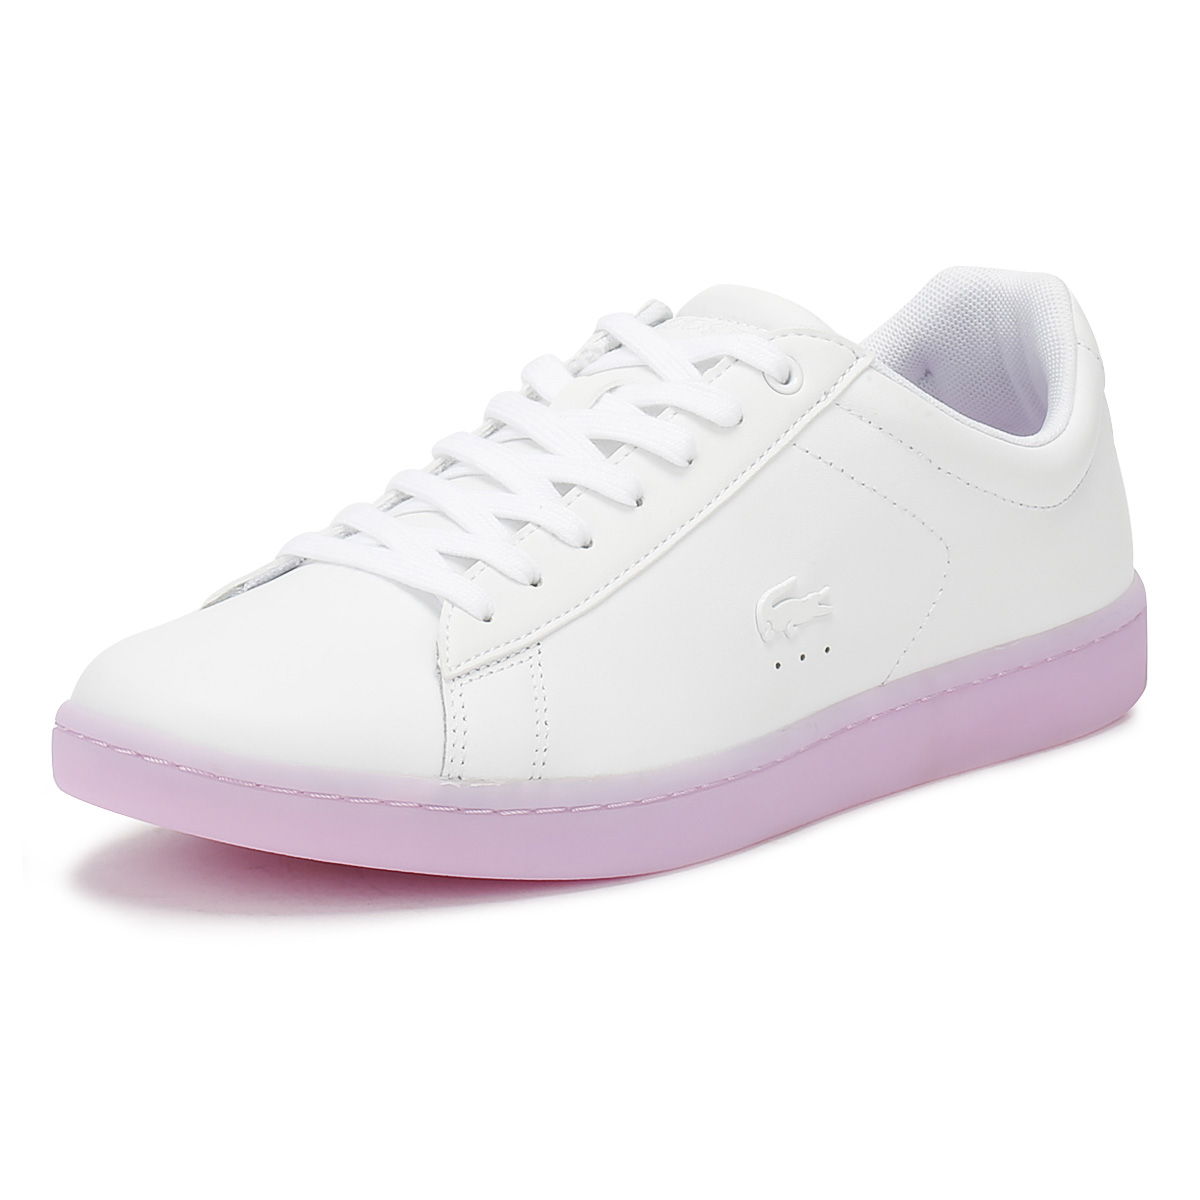 b18c723b3 Lacoste Womens Trainers White   Light Purple Carnaby EVO 118 3 Casual Shoes